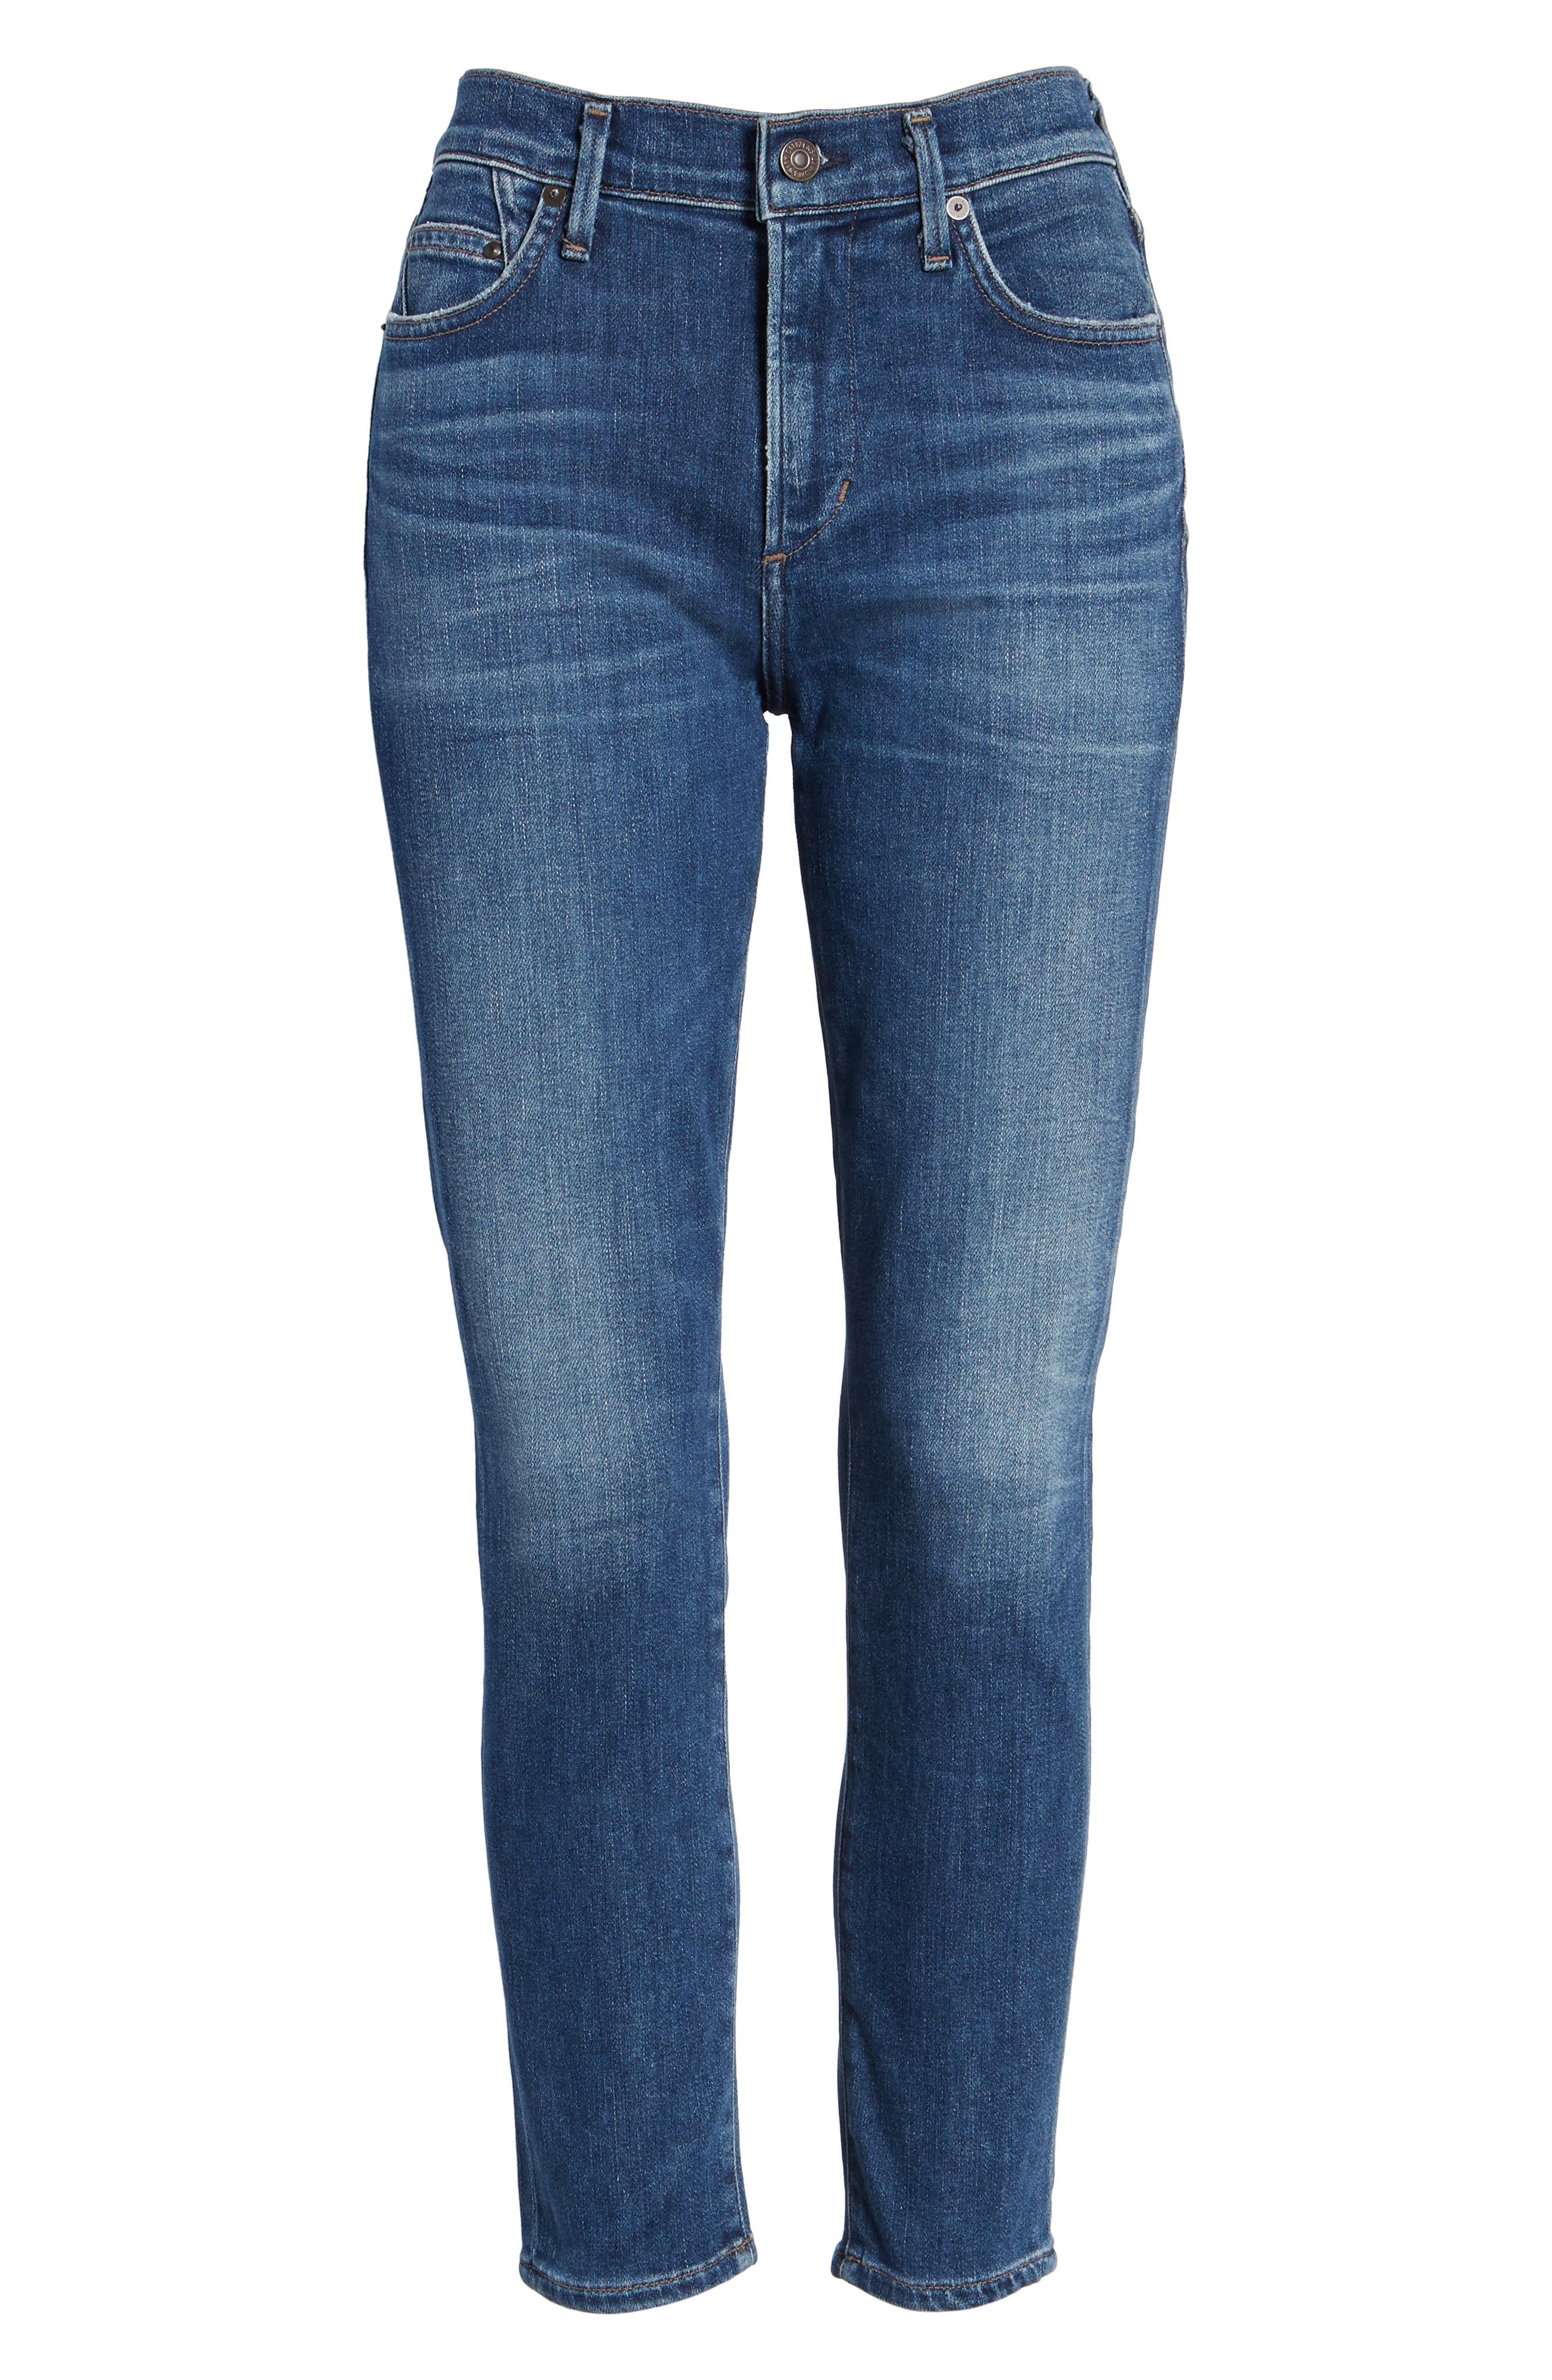 Rocket High Waist Crop Skinny Jeans,                             Alternate thumbnail 6, color,                             409